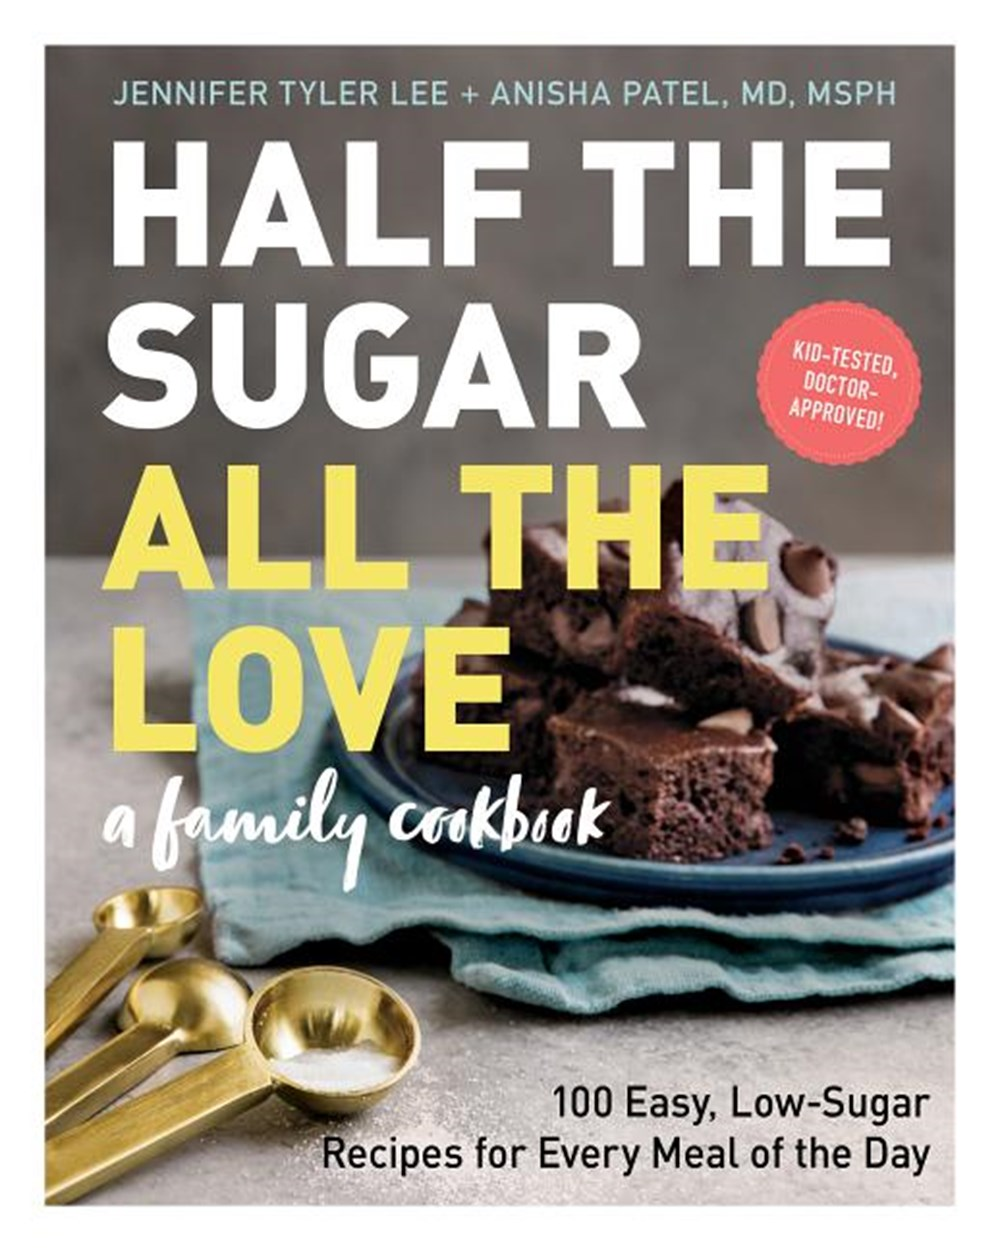 Half the Sugar, All the Love 100 Easy, Low-Sugar Recipes for Every Meal of the Day